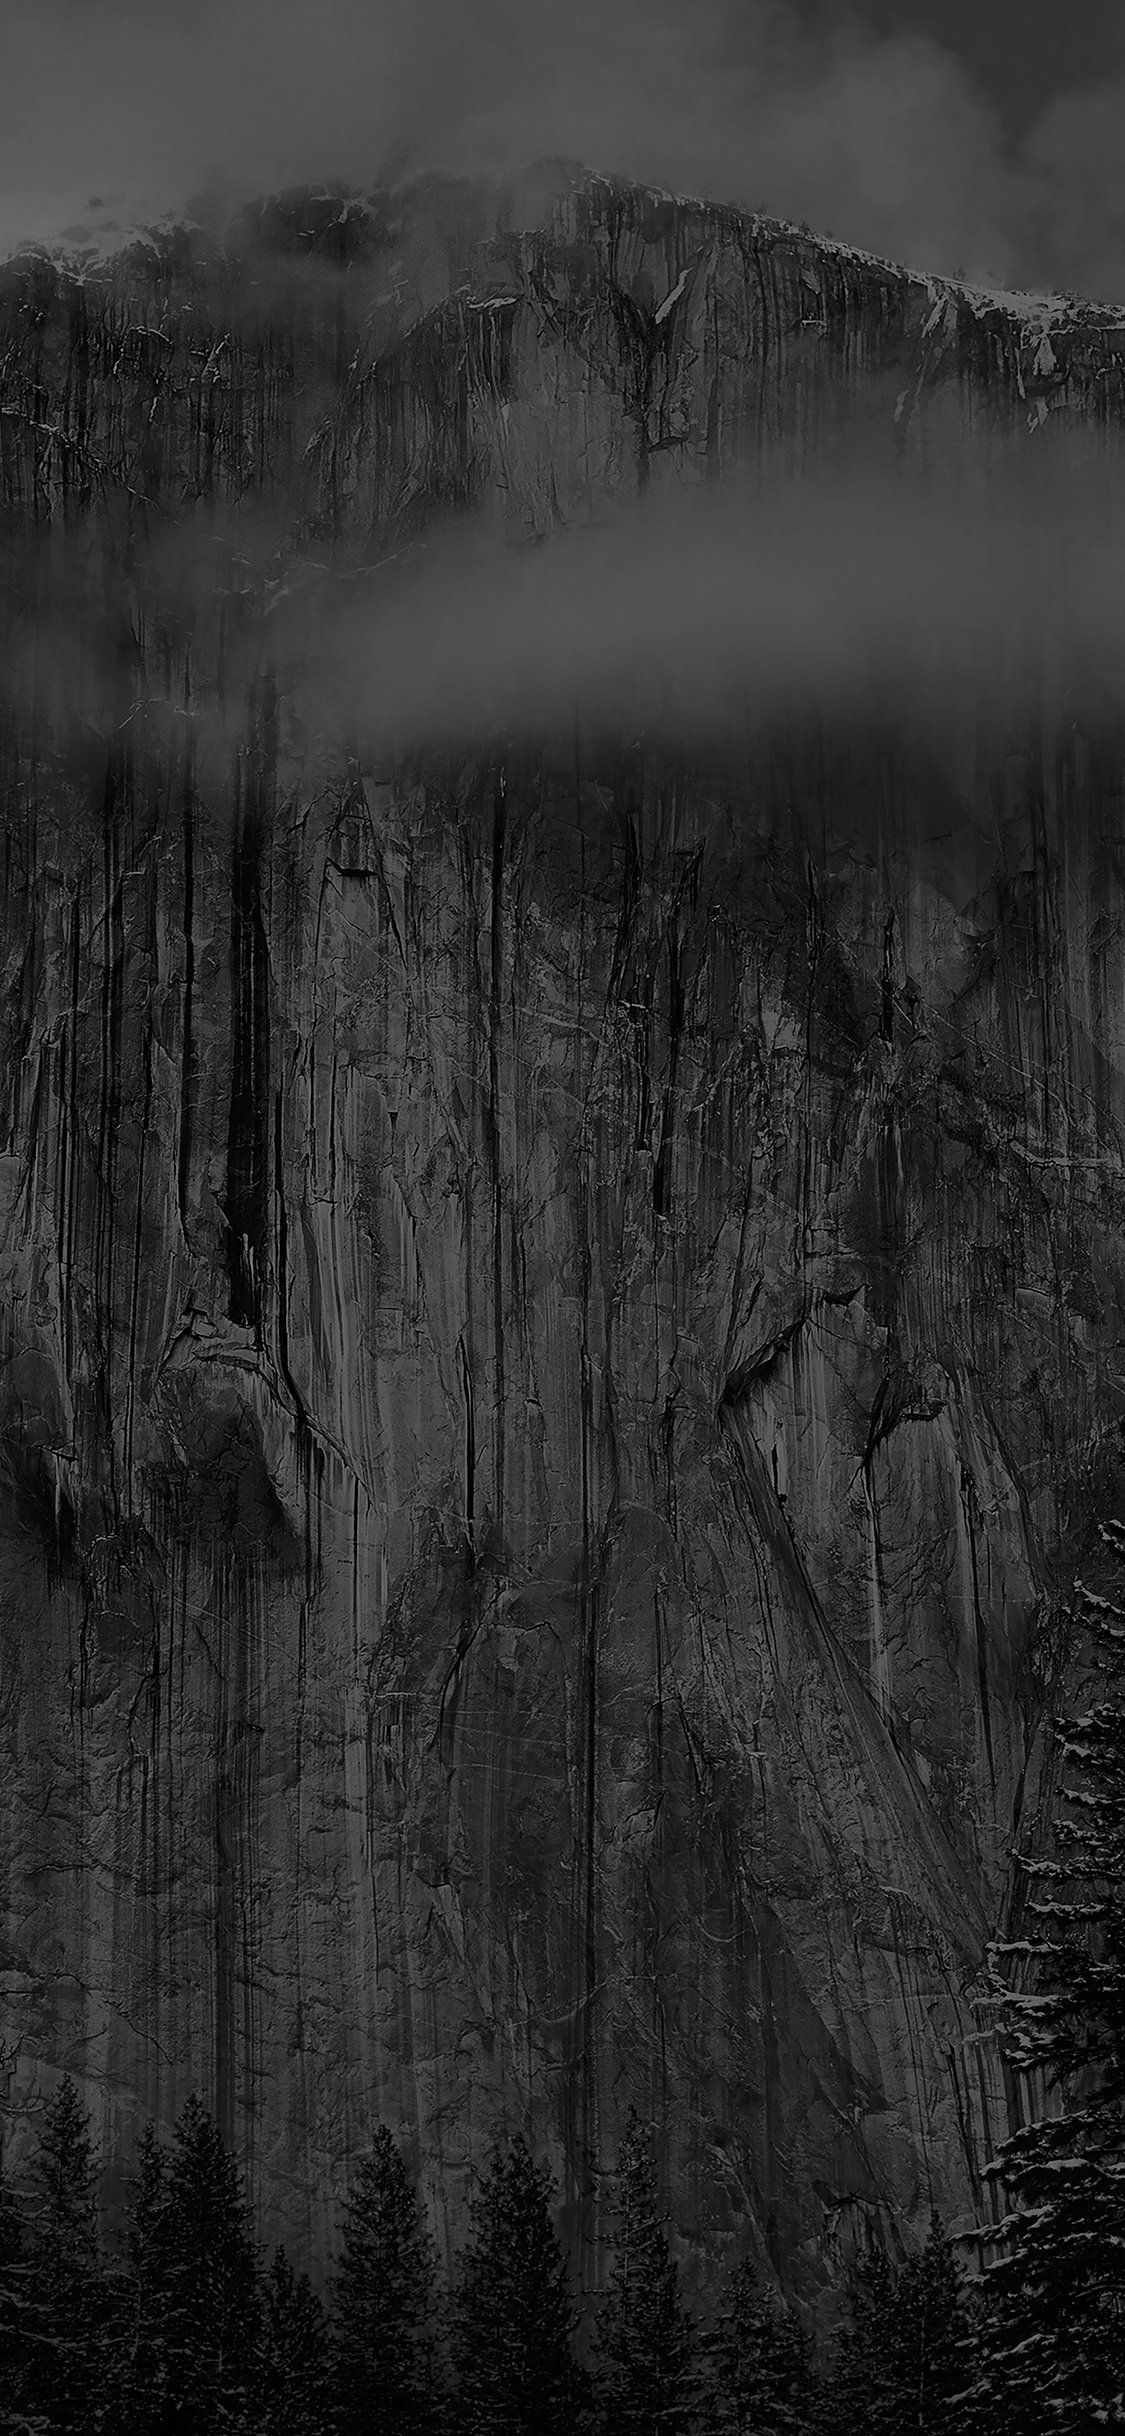 Papers Co Mg49 Os X Yosemite Black Wallpaper Apple 41 Iphone Wallpaper Jpg 1125 2436 Black Wallpaper Apple Wallpaper Osx Yosemite